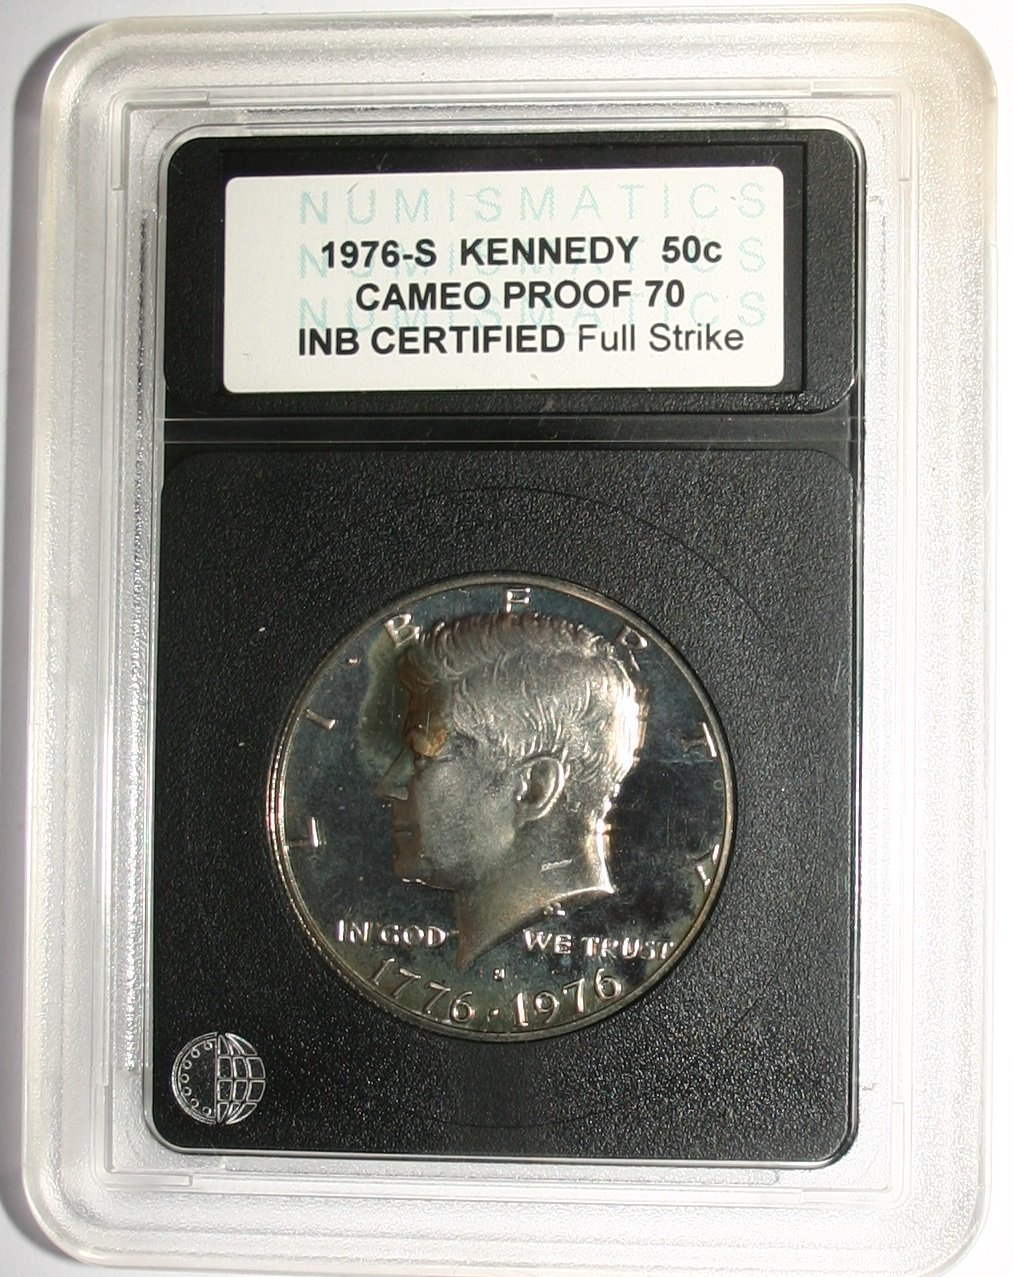 USA 1976-S Kennedy 50c Cameo Proof 70 INB Certified Coin